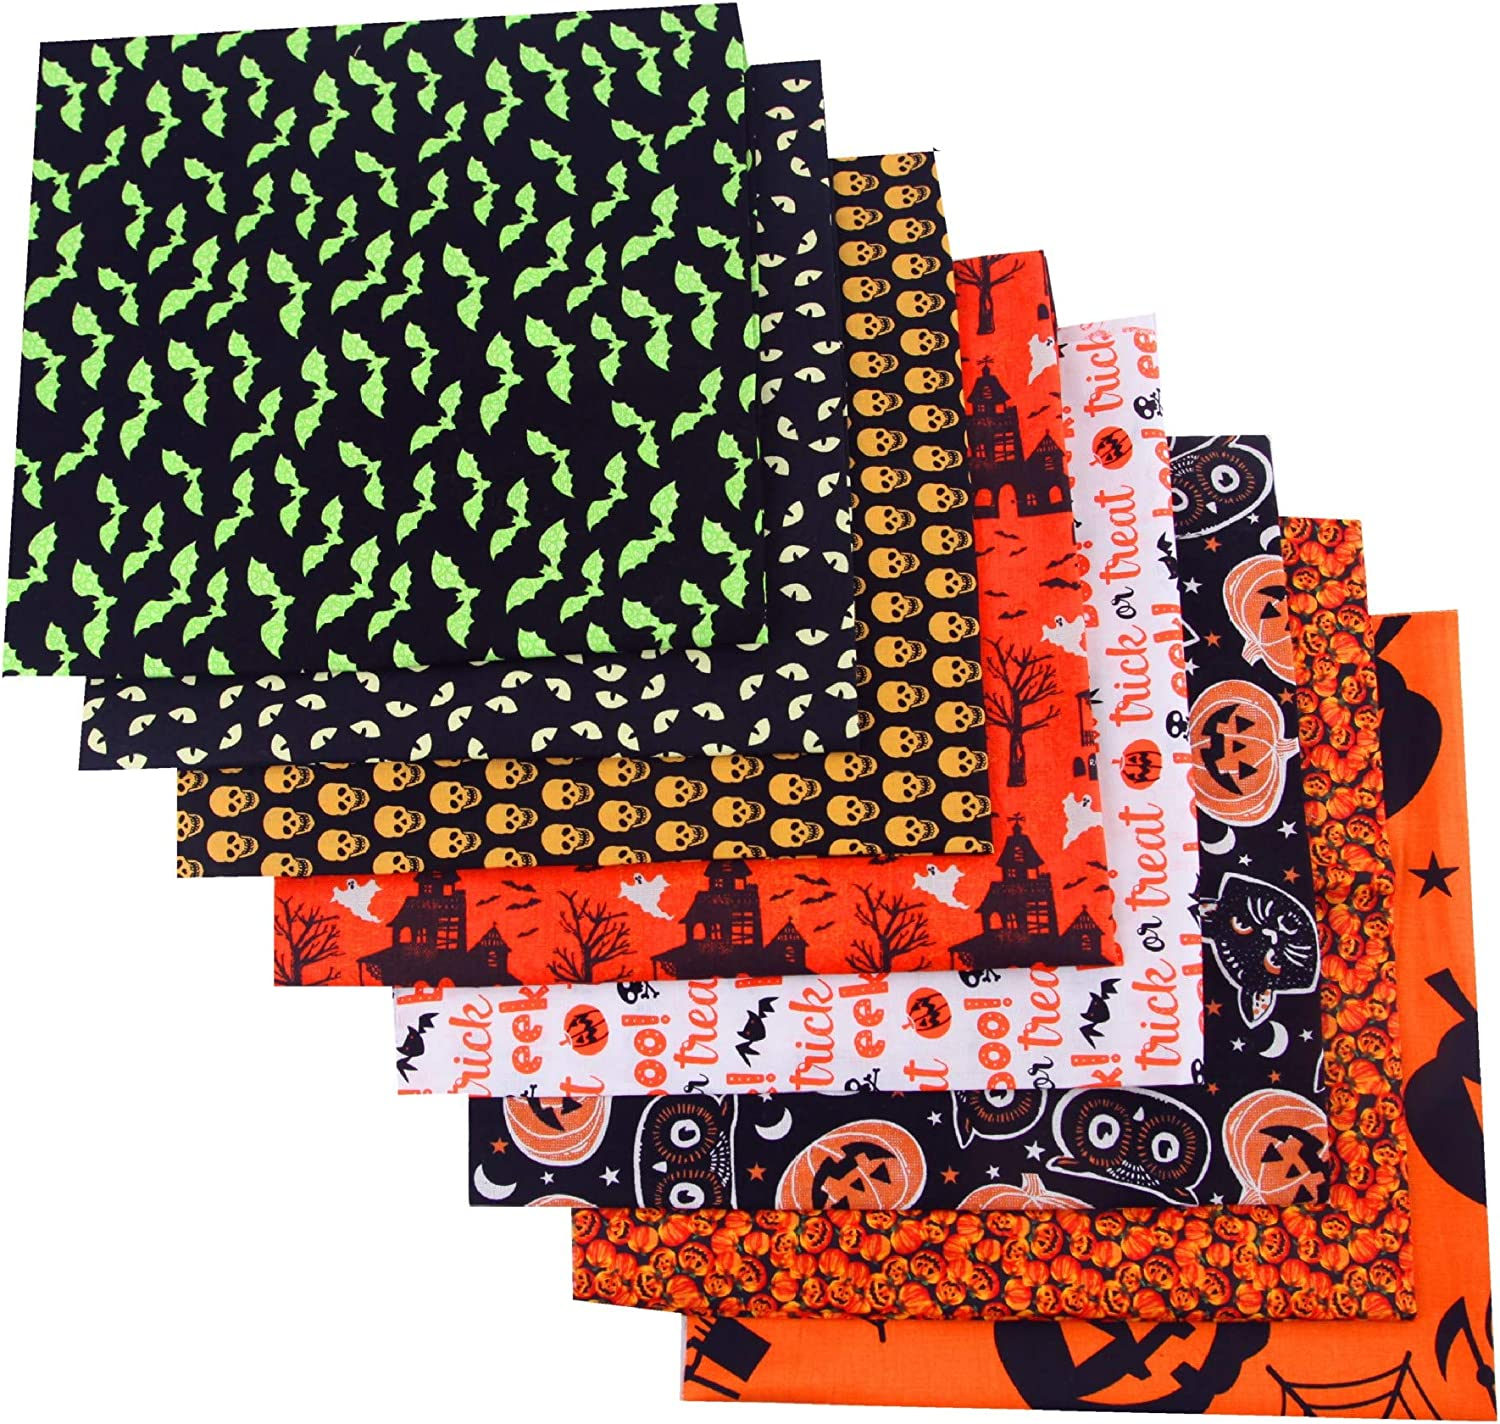 8pcs 19.6/×19.6 Halloween Themed Pumpkin Skull Bat Pattern Cotton Holiday Triangle Flag Fabric